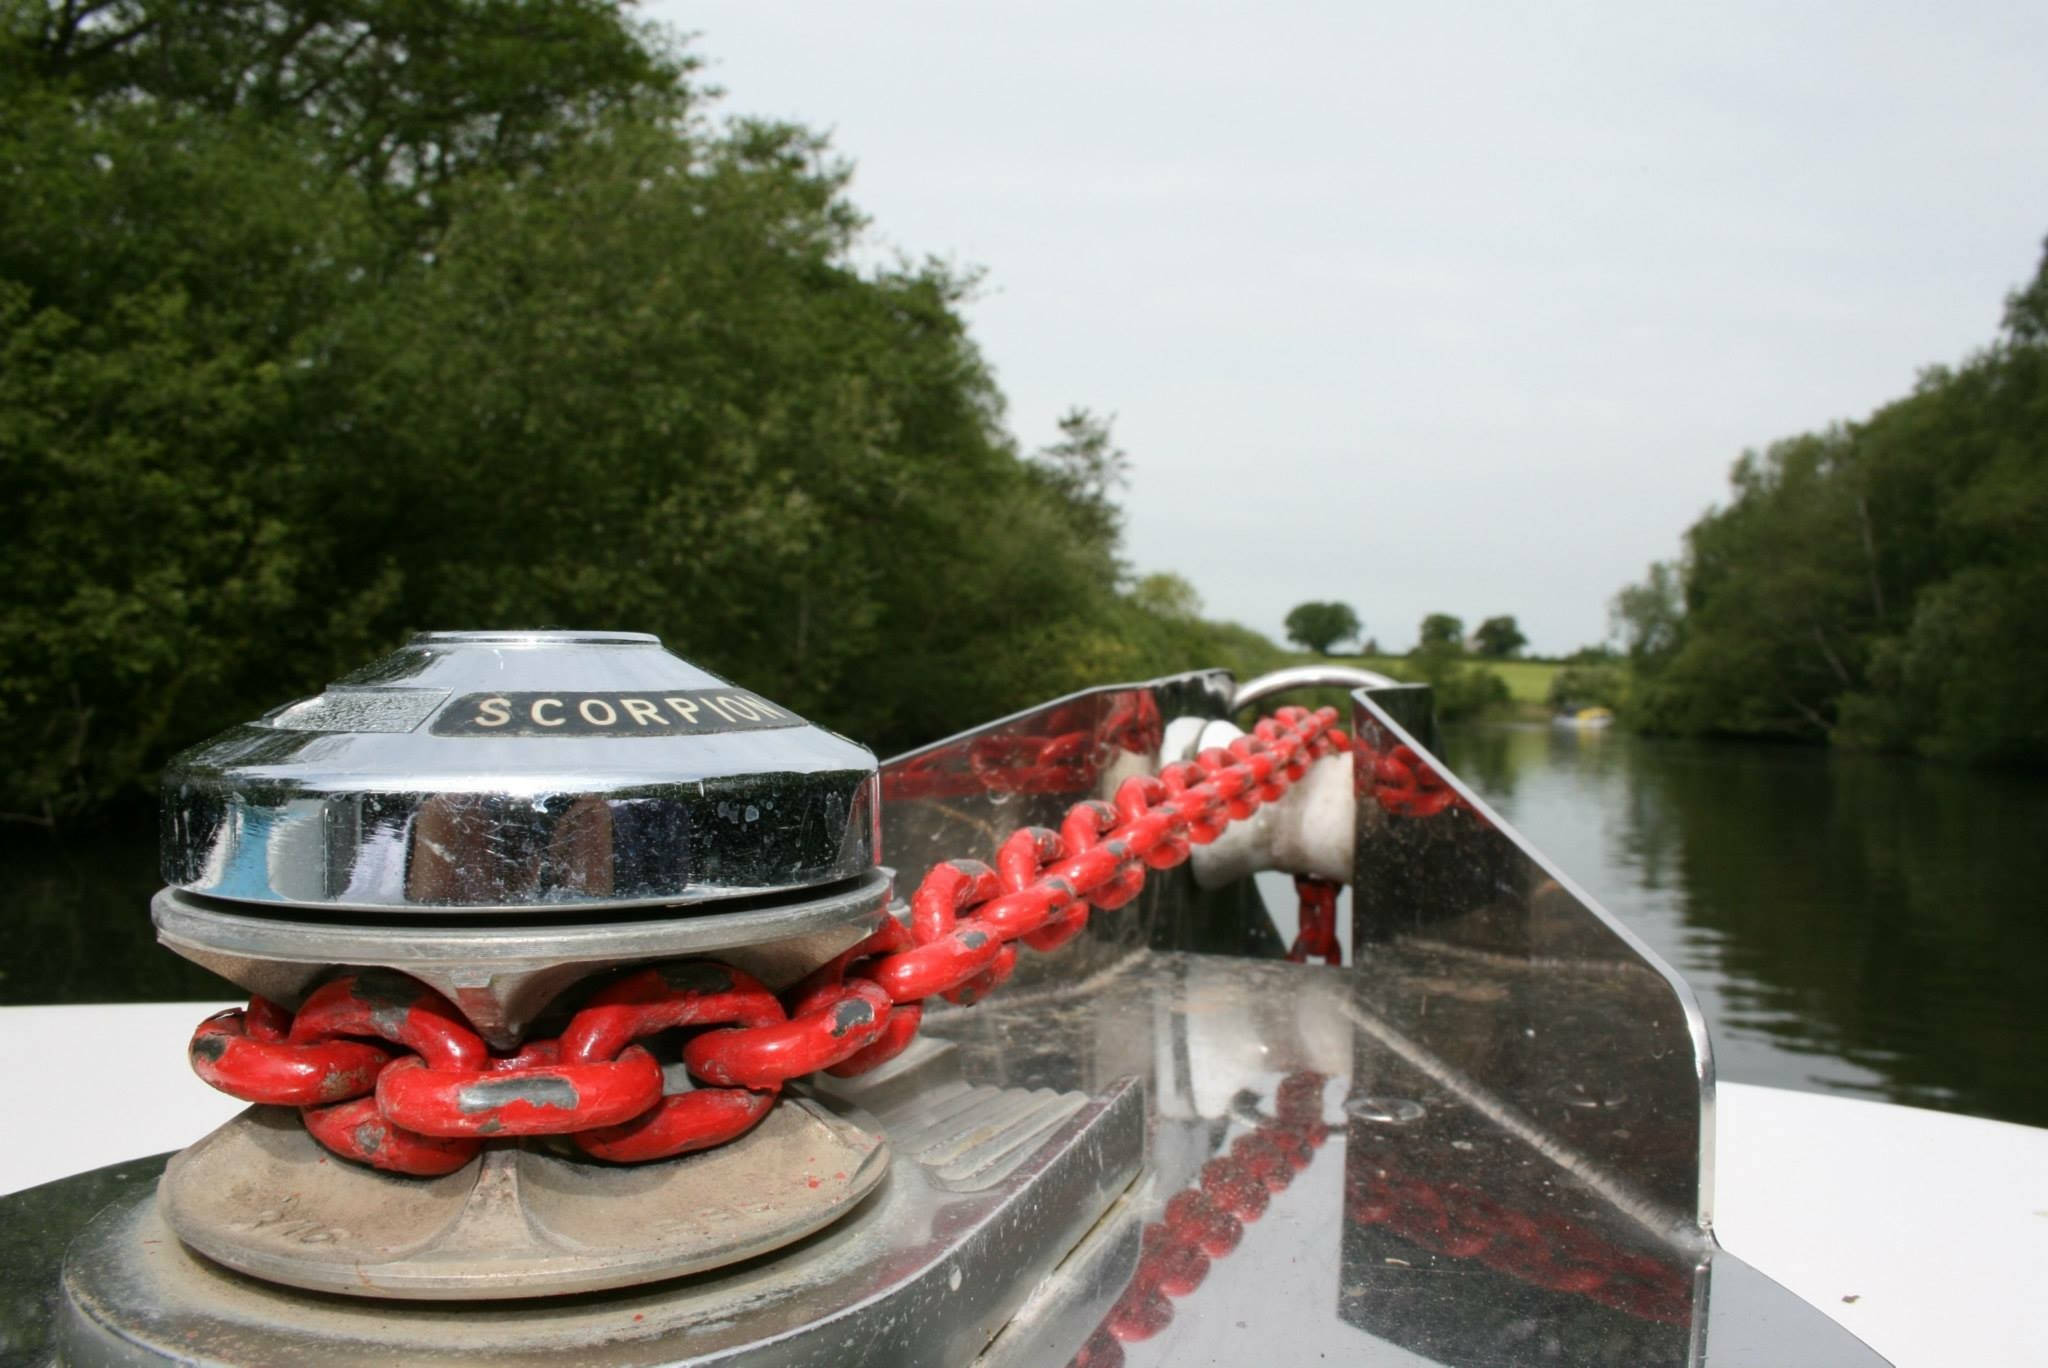 At anchor on the Broads